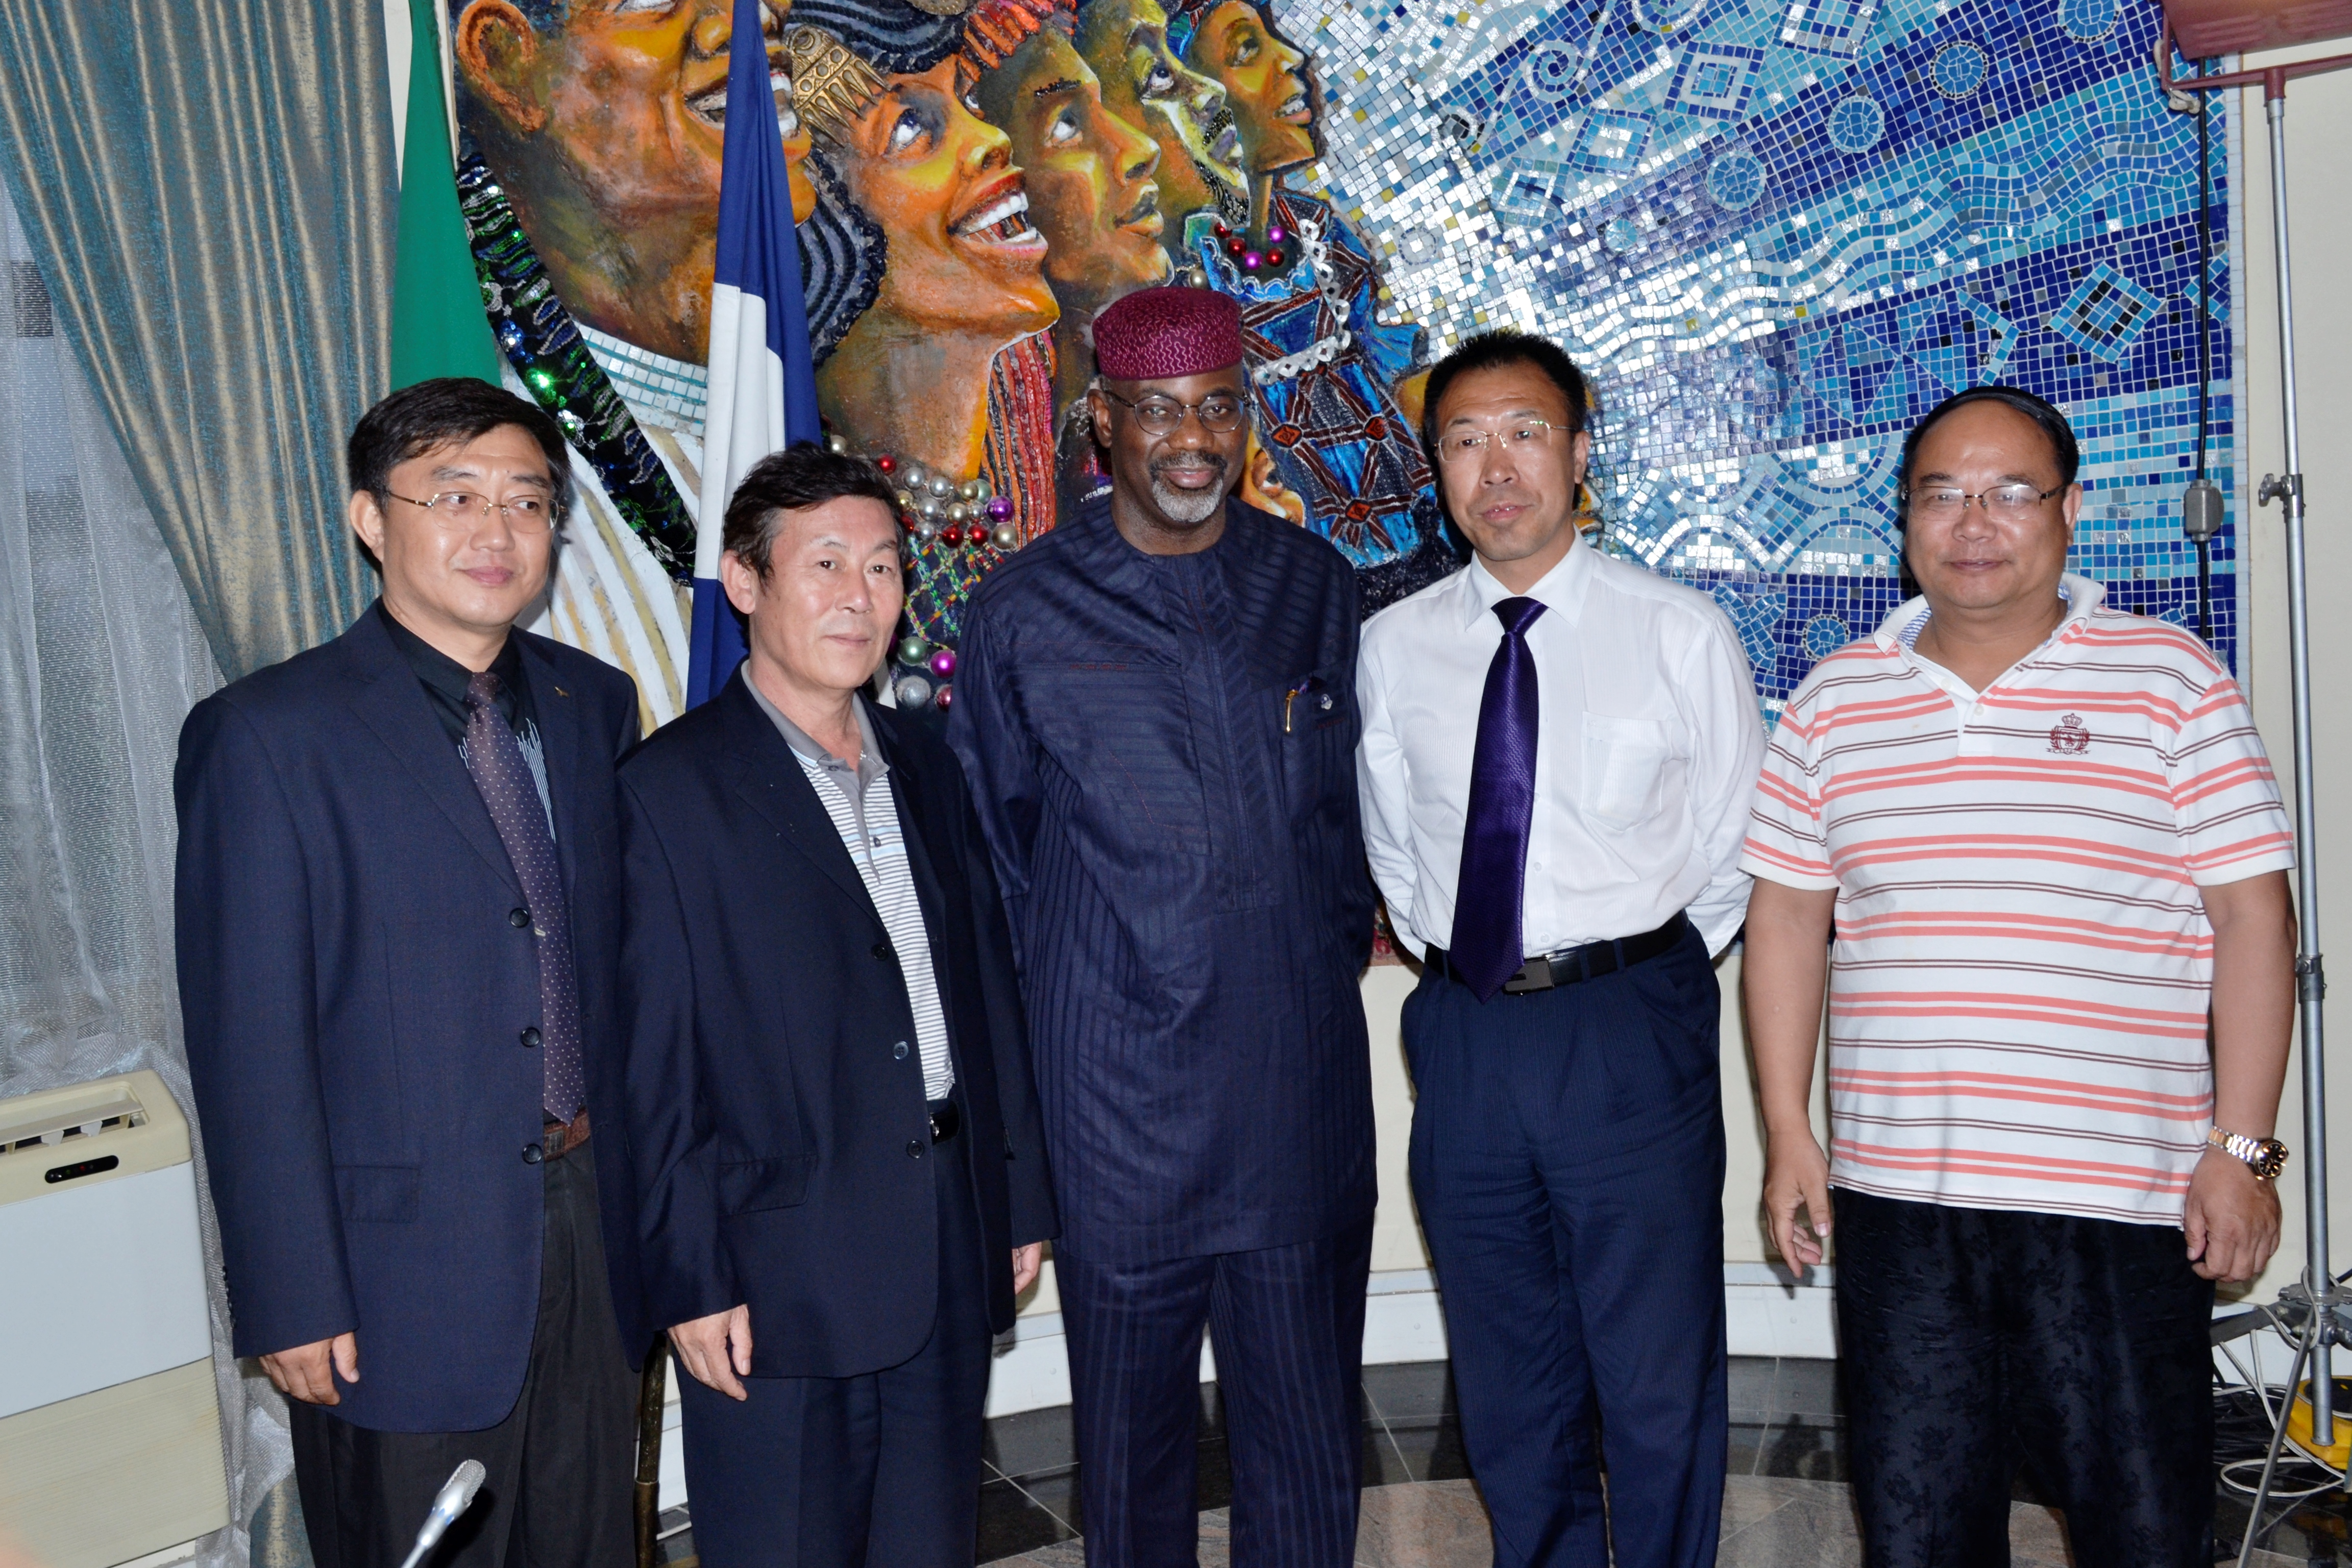 Cross River State Governor, Senator Liyel Imoke (m) flanked by Mr.Wei Henghan, Managing Director, Lianonig Chambers of Commerce Mr. Yang Wenyi(L) and Mr. Sun Wenzheng and another member of the trade delegation who paid a courtesy visit to government house, Calabar.